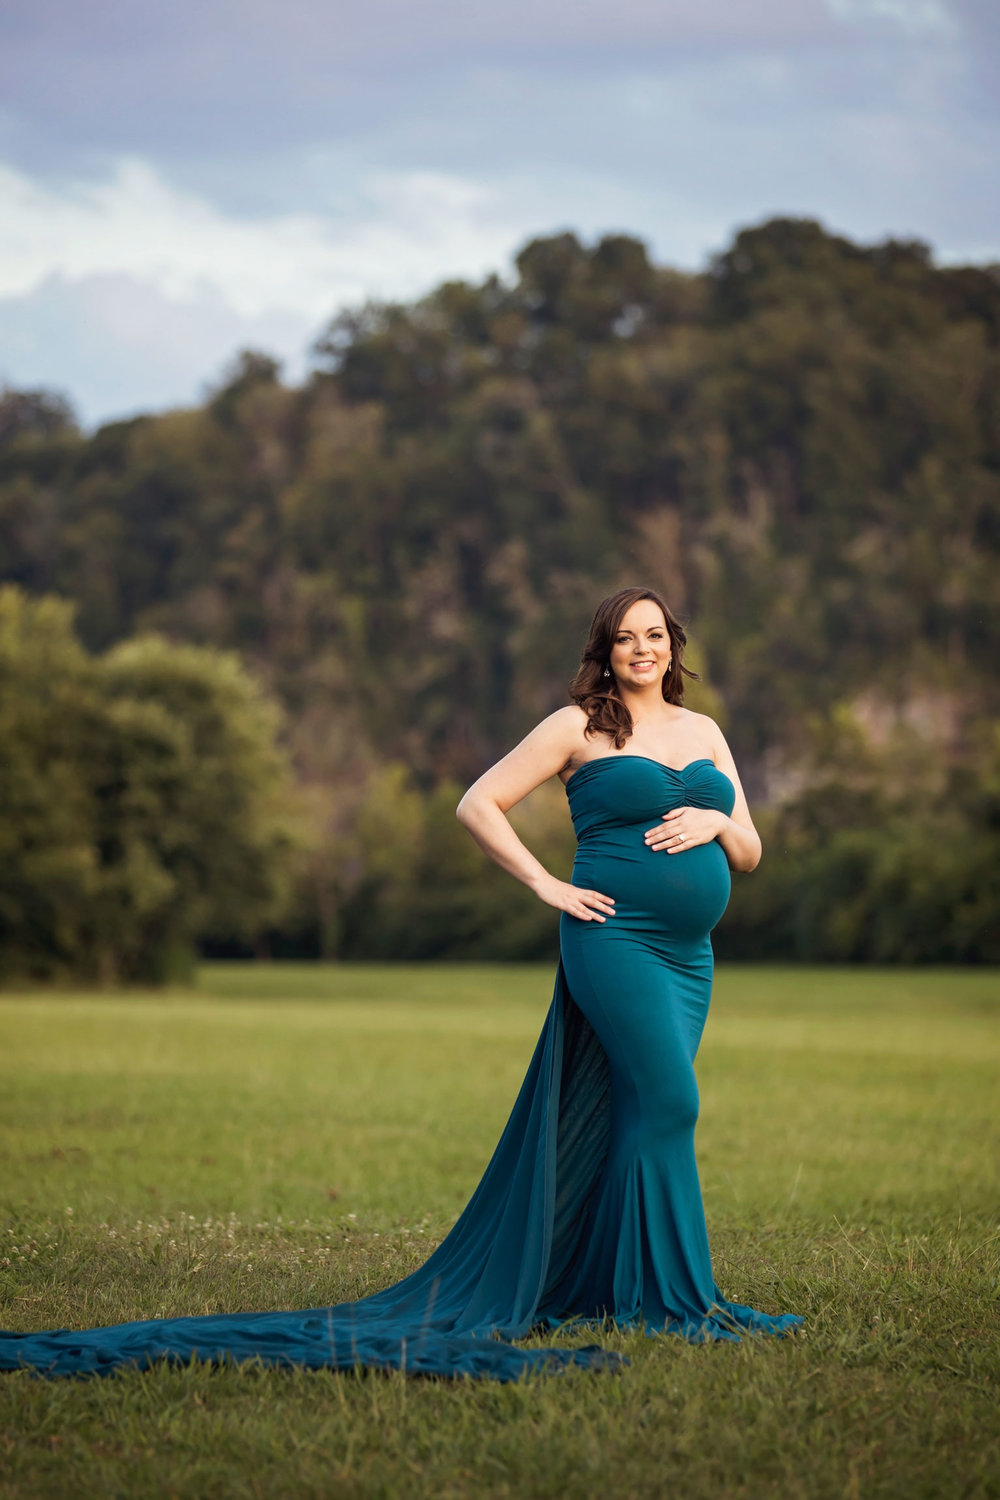 knoxville-maternity-photographer-sequoyah-hills-park.jpg